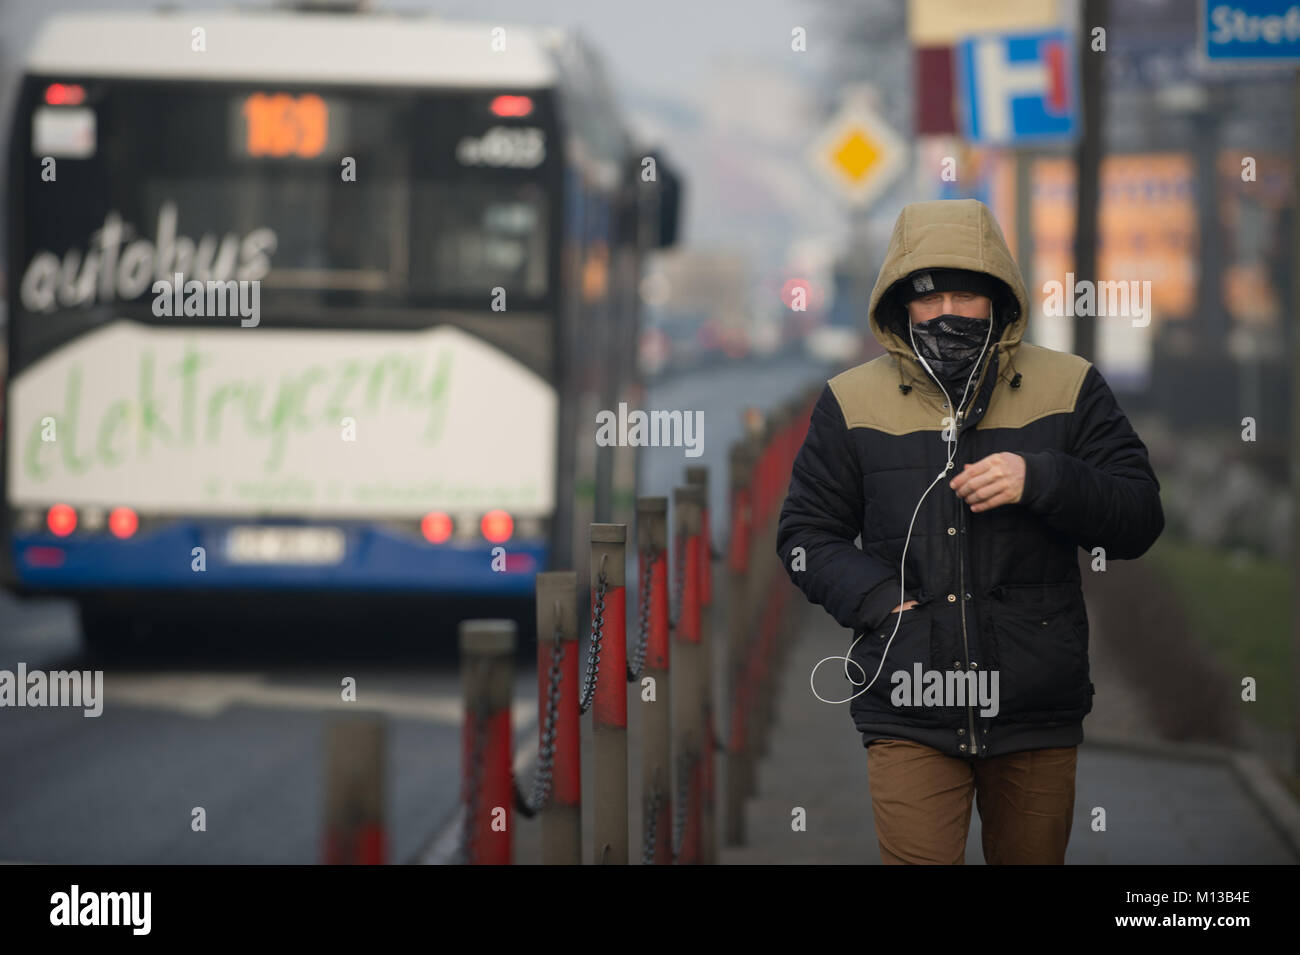 Krakow, Poland. 26th Jan, 2018. A man covers his face with a scarf ...